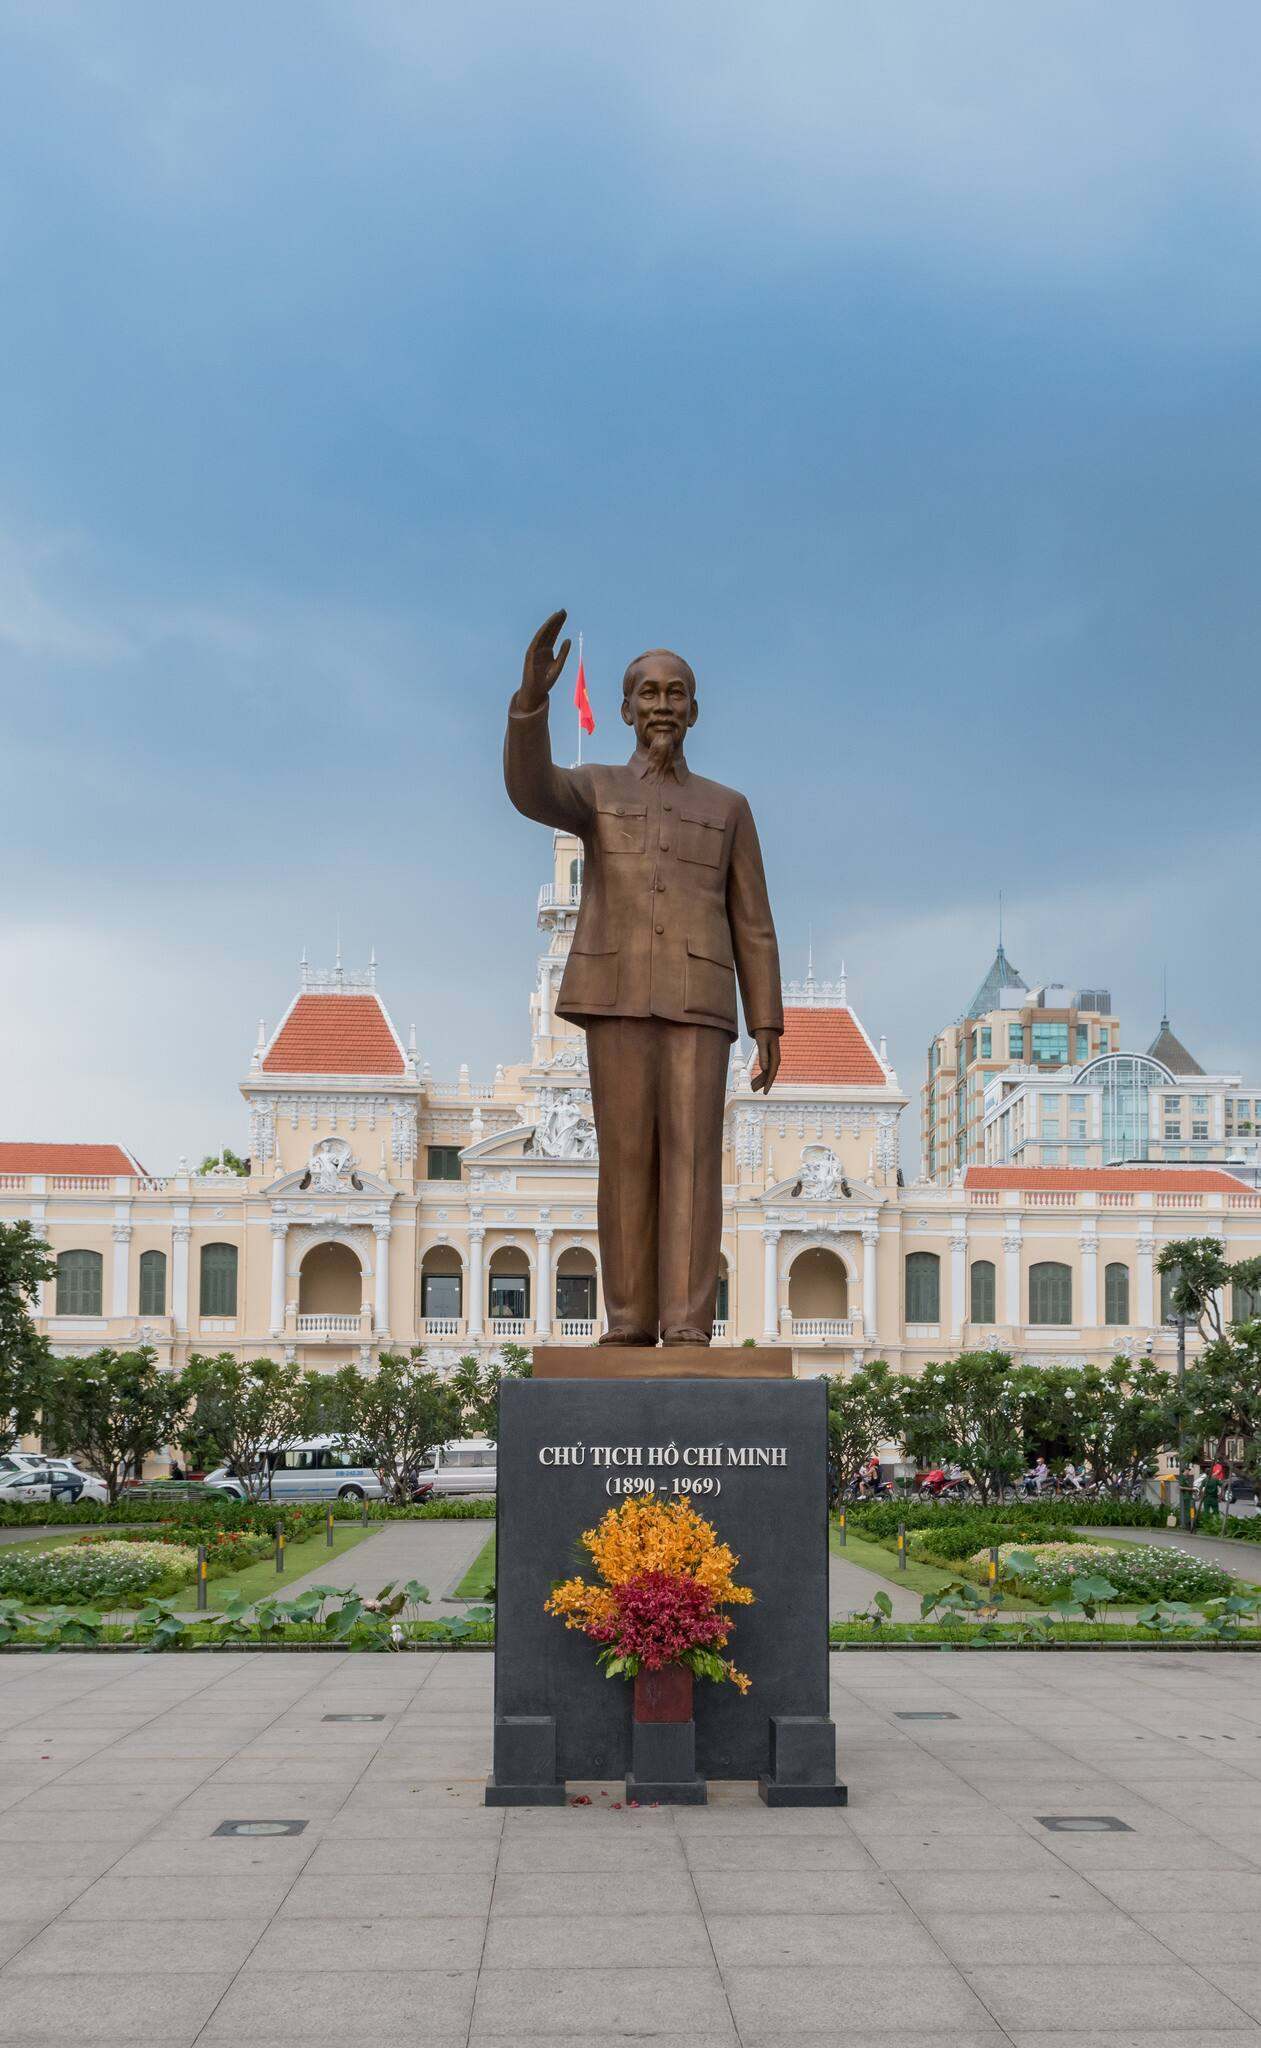 Seattle to Ho Chi Minh City Vietnam $575-$581 RT Airfares on Asiana Airlines (Travel February-May 2020) $578